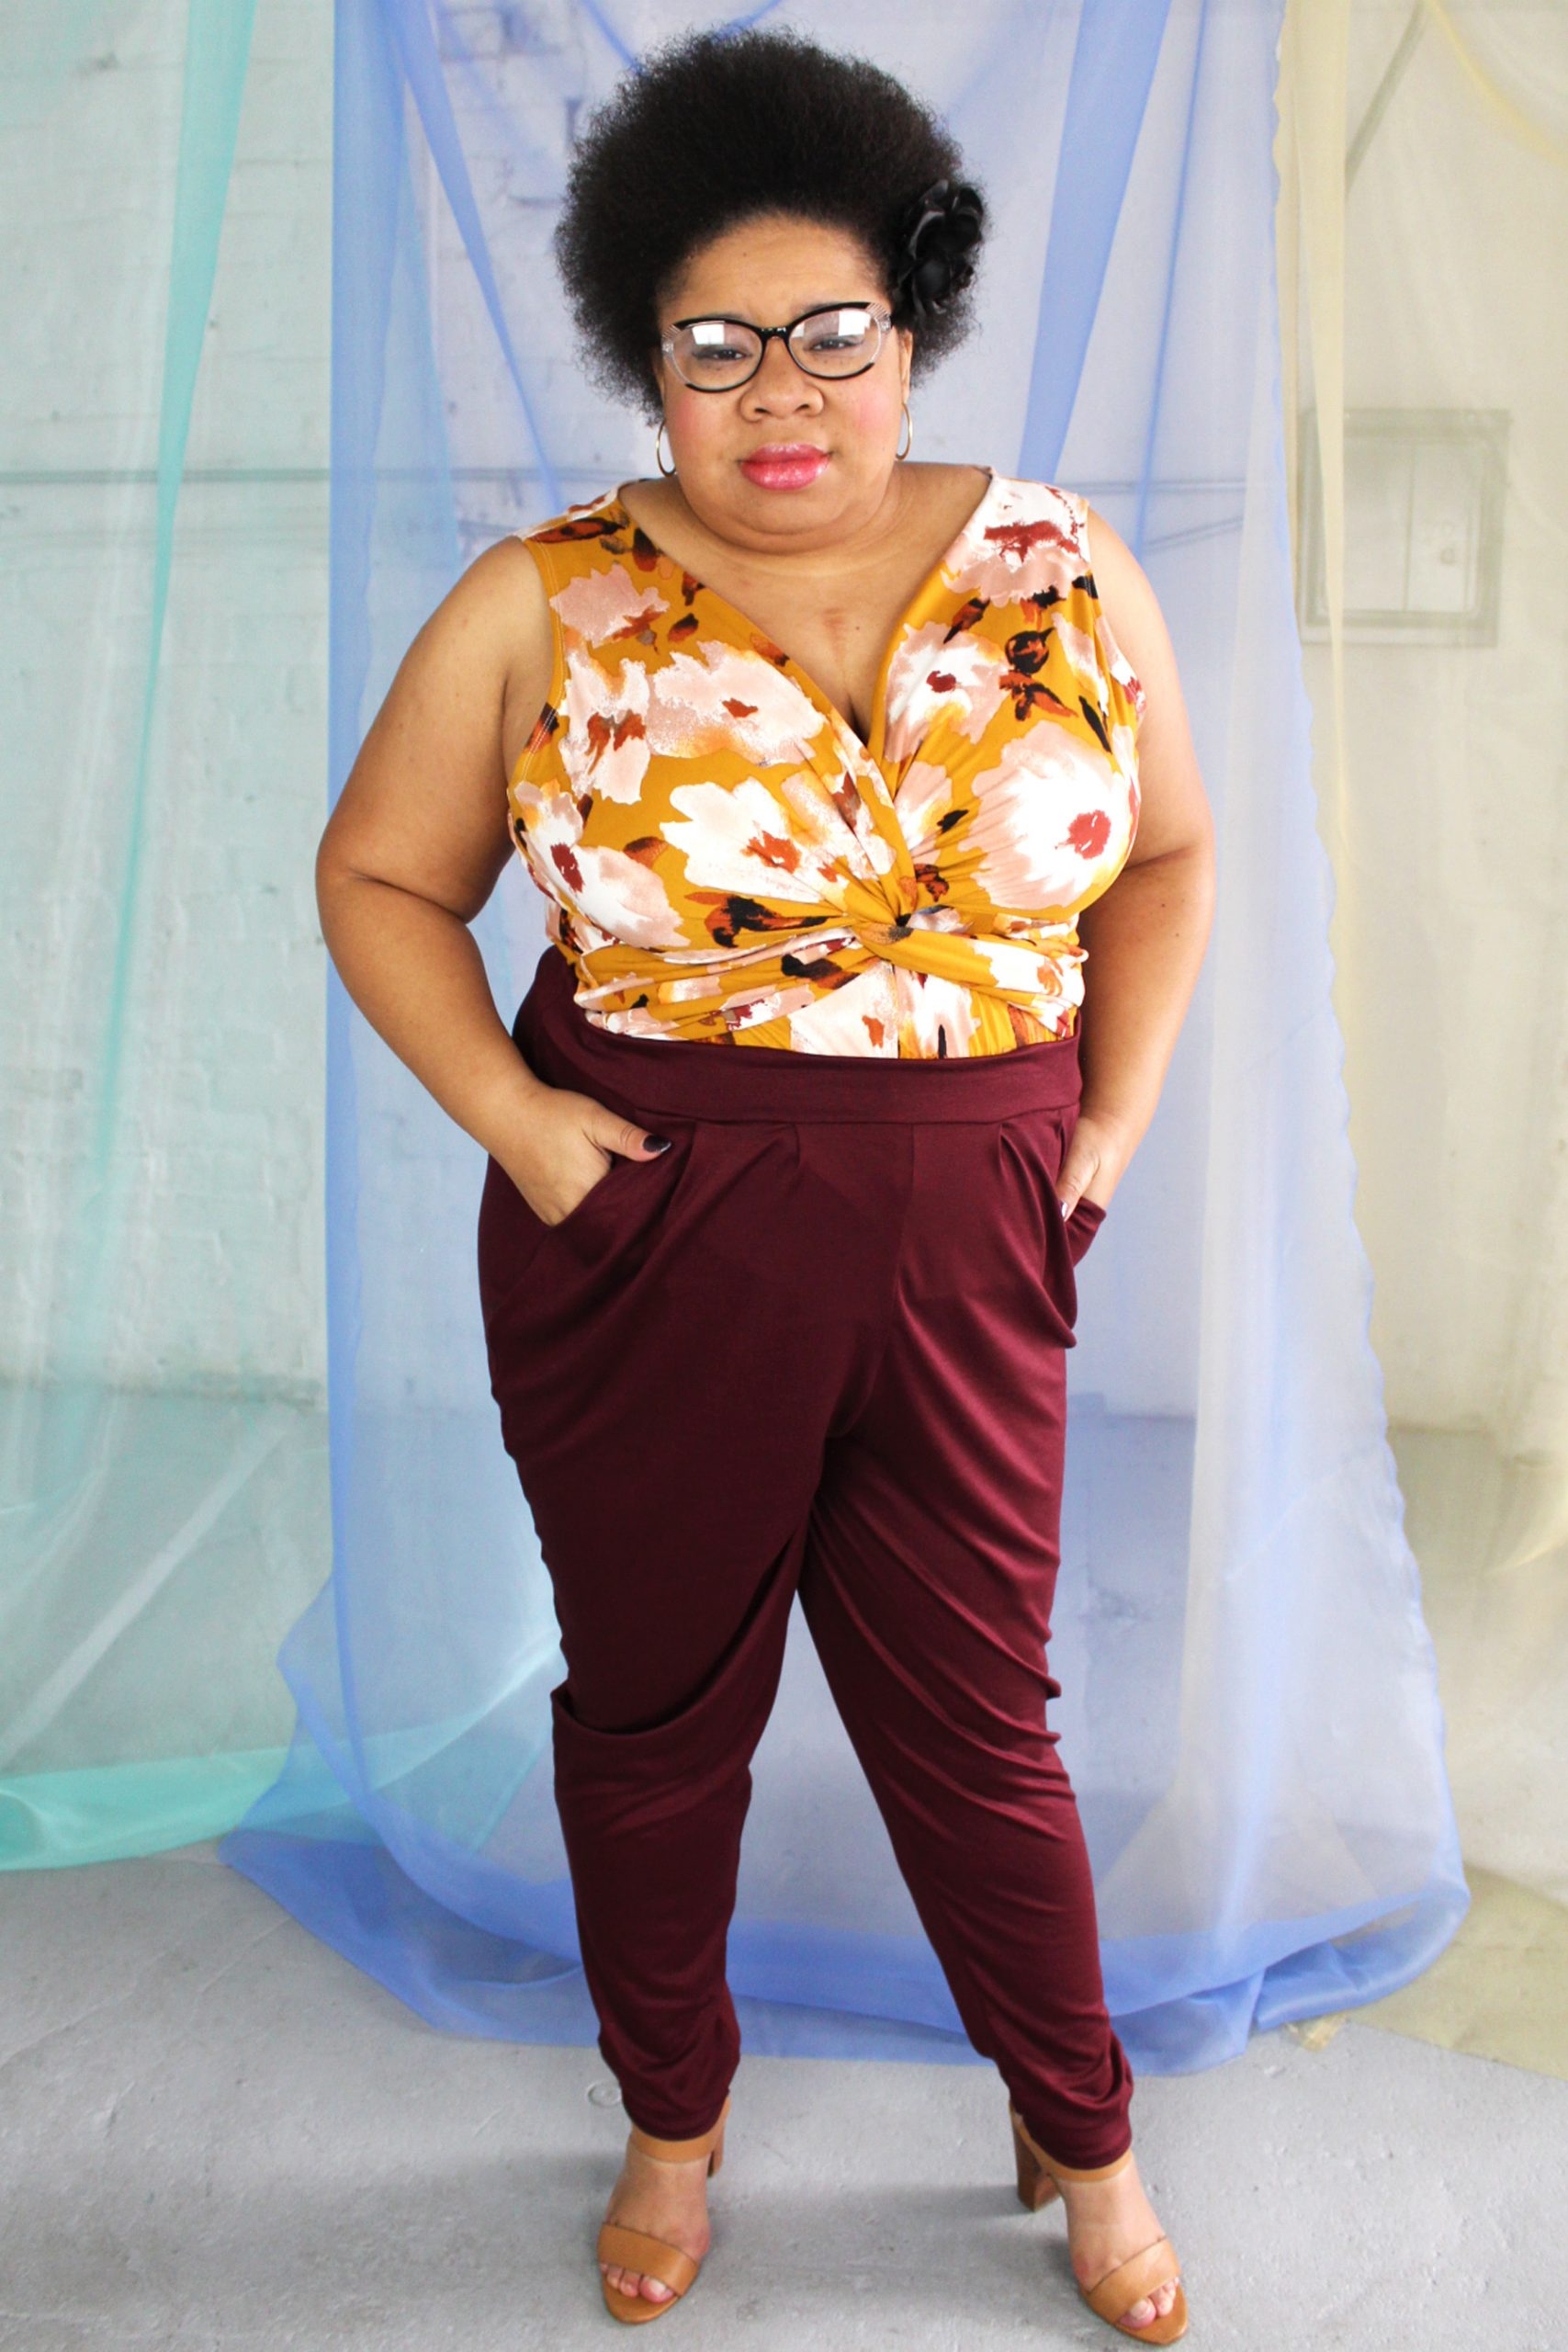 Plus size black model with afro + glasses wearing wine maroon pants with pockets and mustard floral twist detail jersey tank